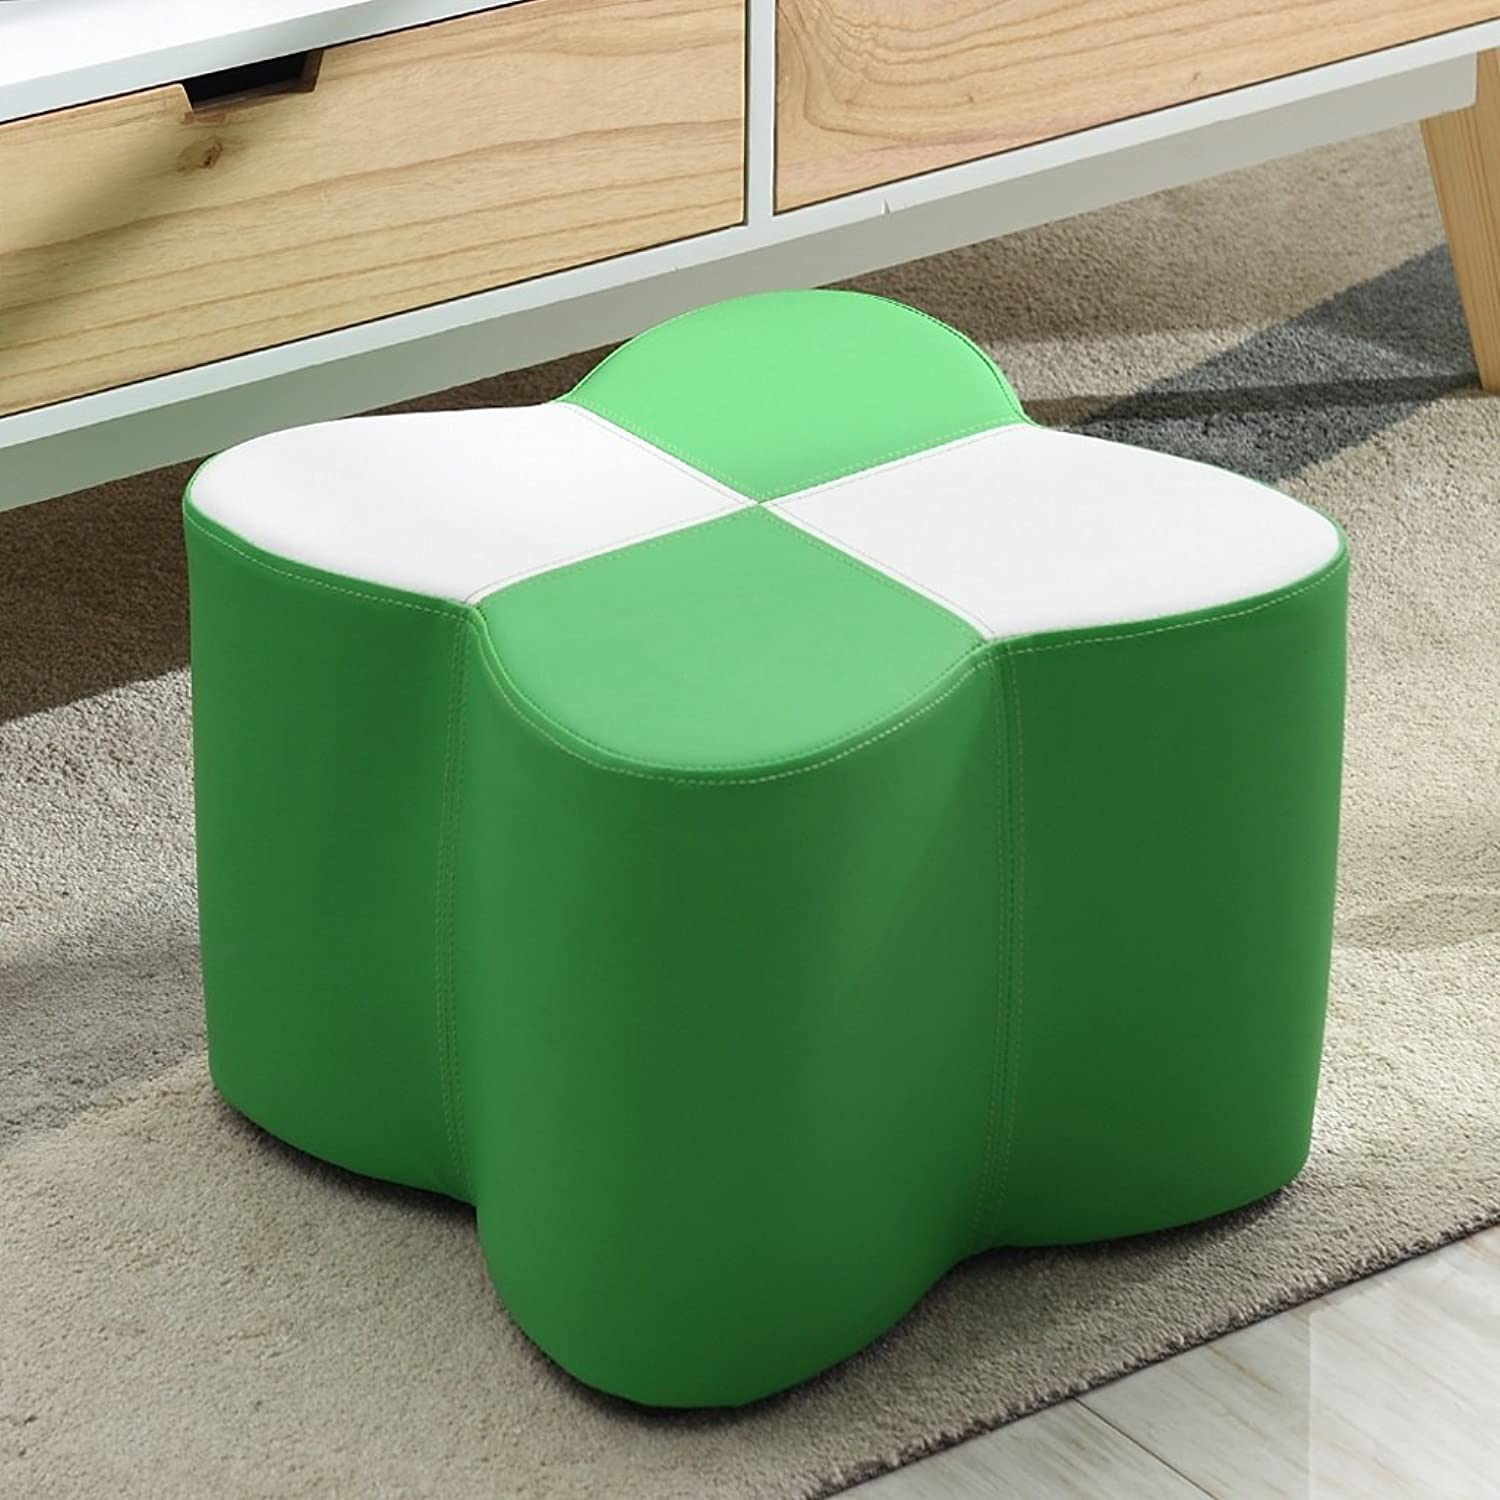 CJH Simple Modern shoes Stool Leather Stool shoes Bench Pier Foyer Sofa Stool shoes Stool Stool Green